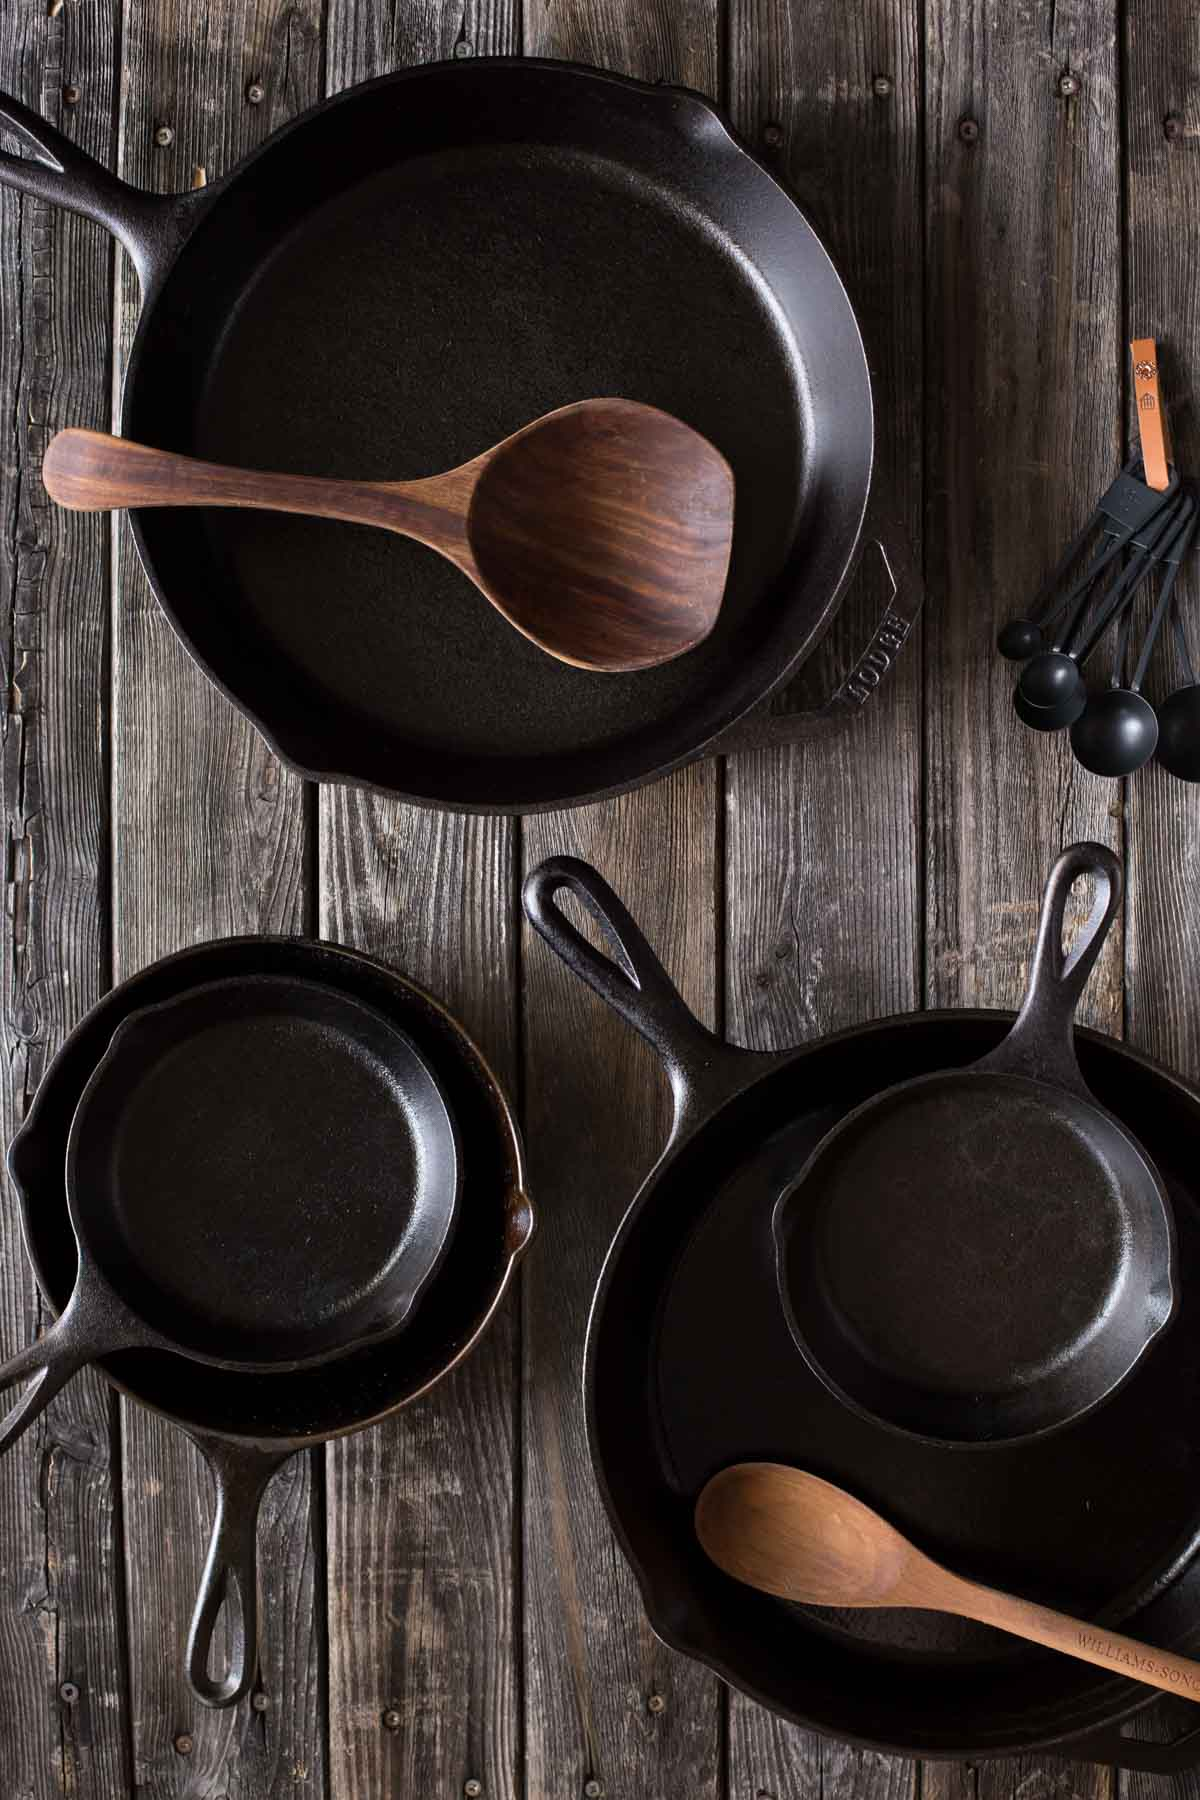 A top down view of various sizes of cast iron skillets with wooden spoons.